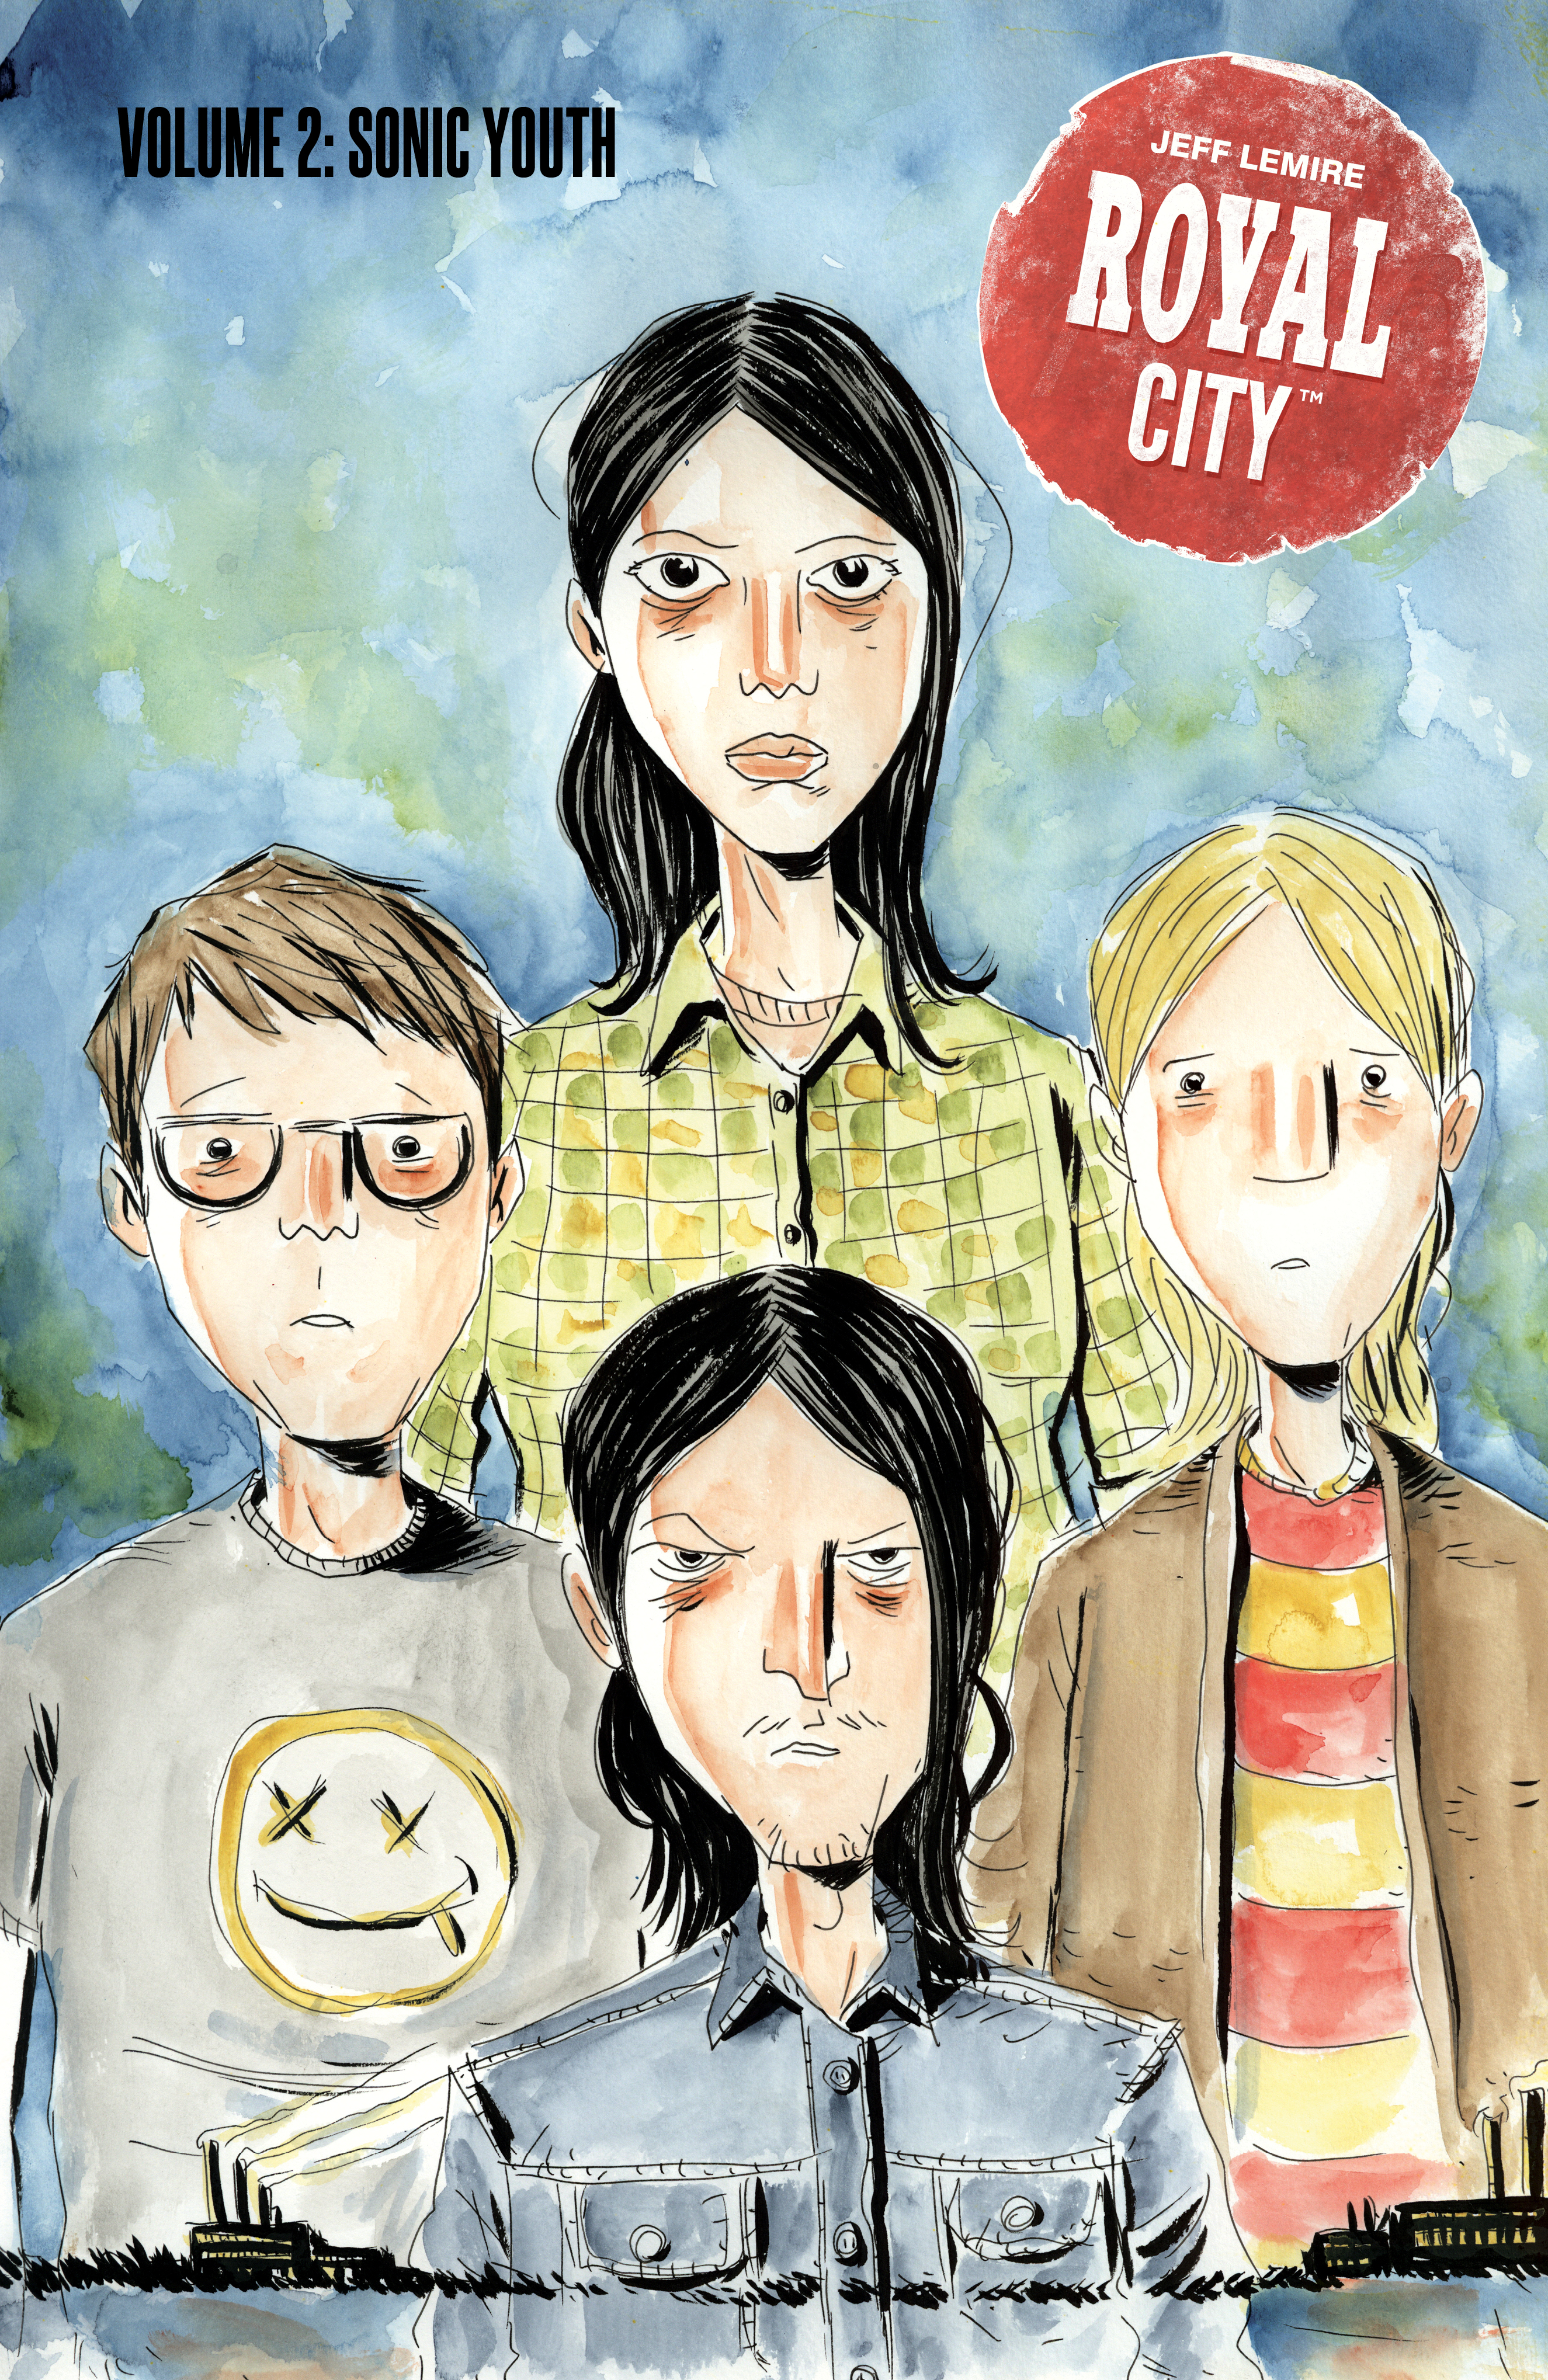 ROYAL CITY TP VOL 02 SONIC YOUTH (FEB180679) (MR)